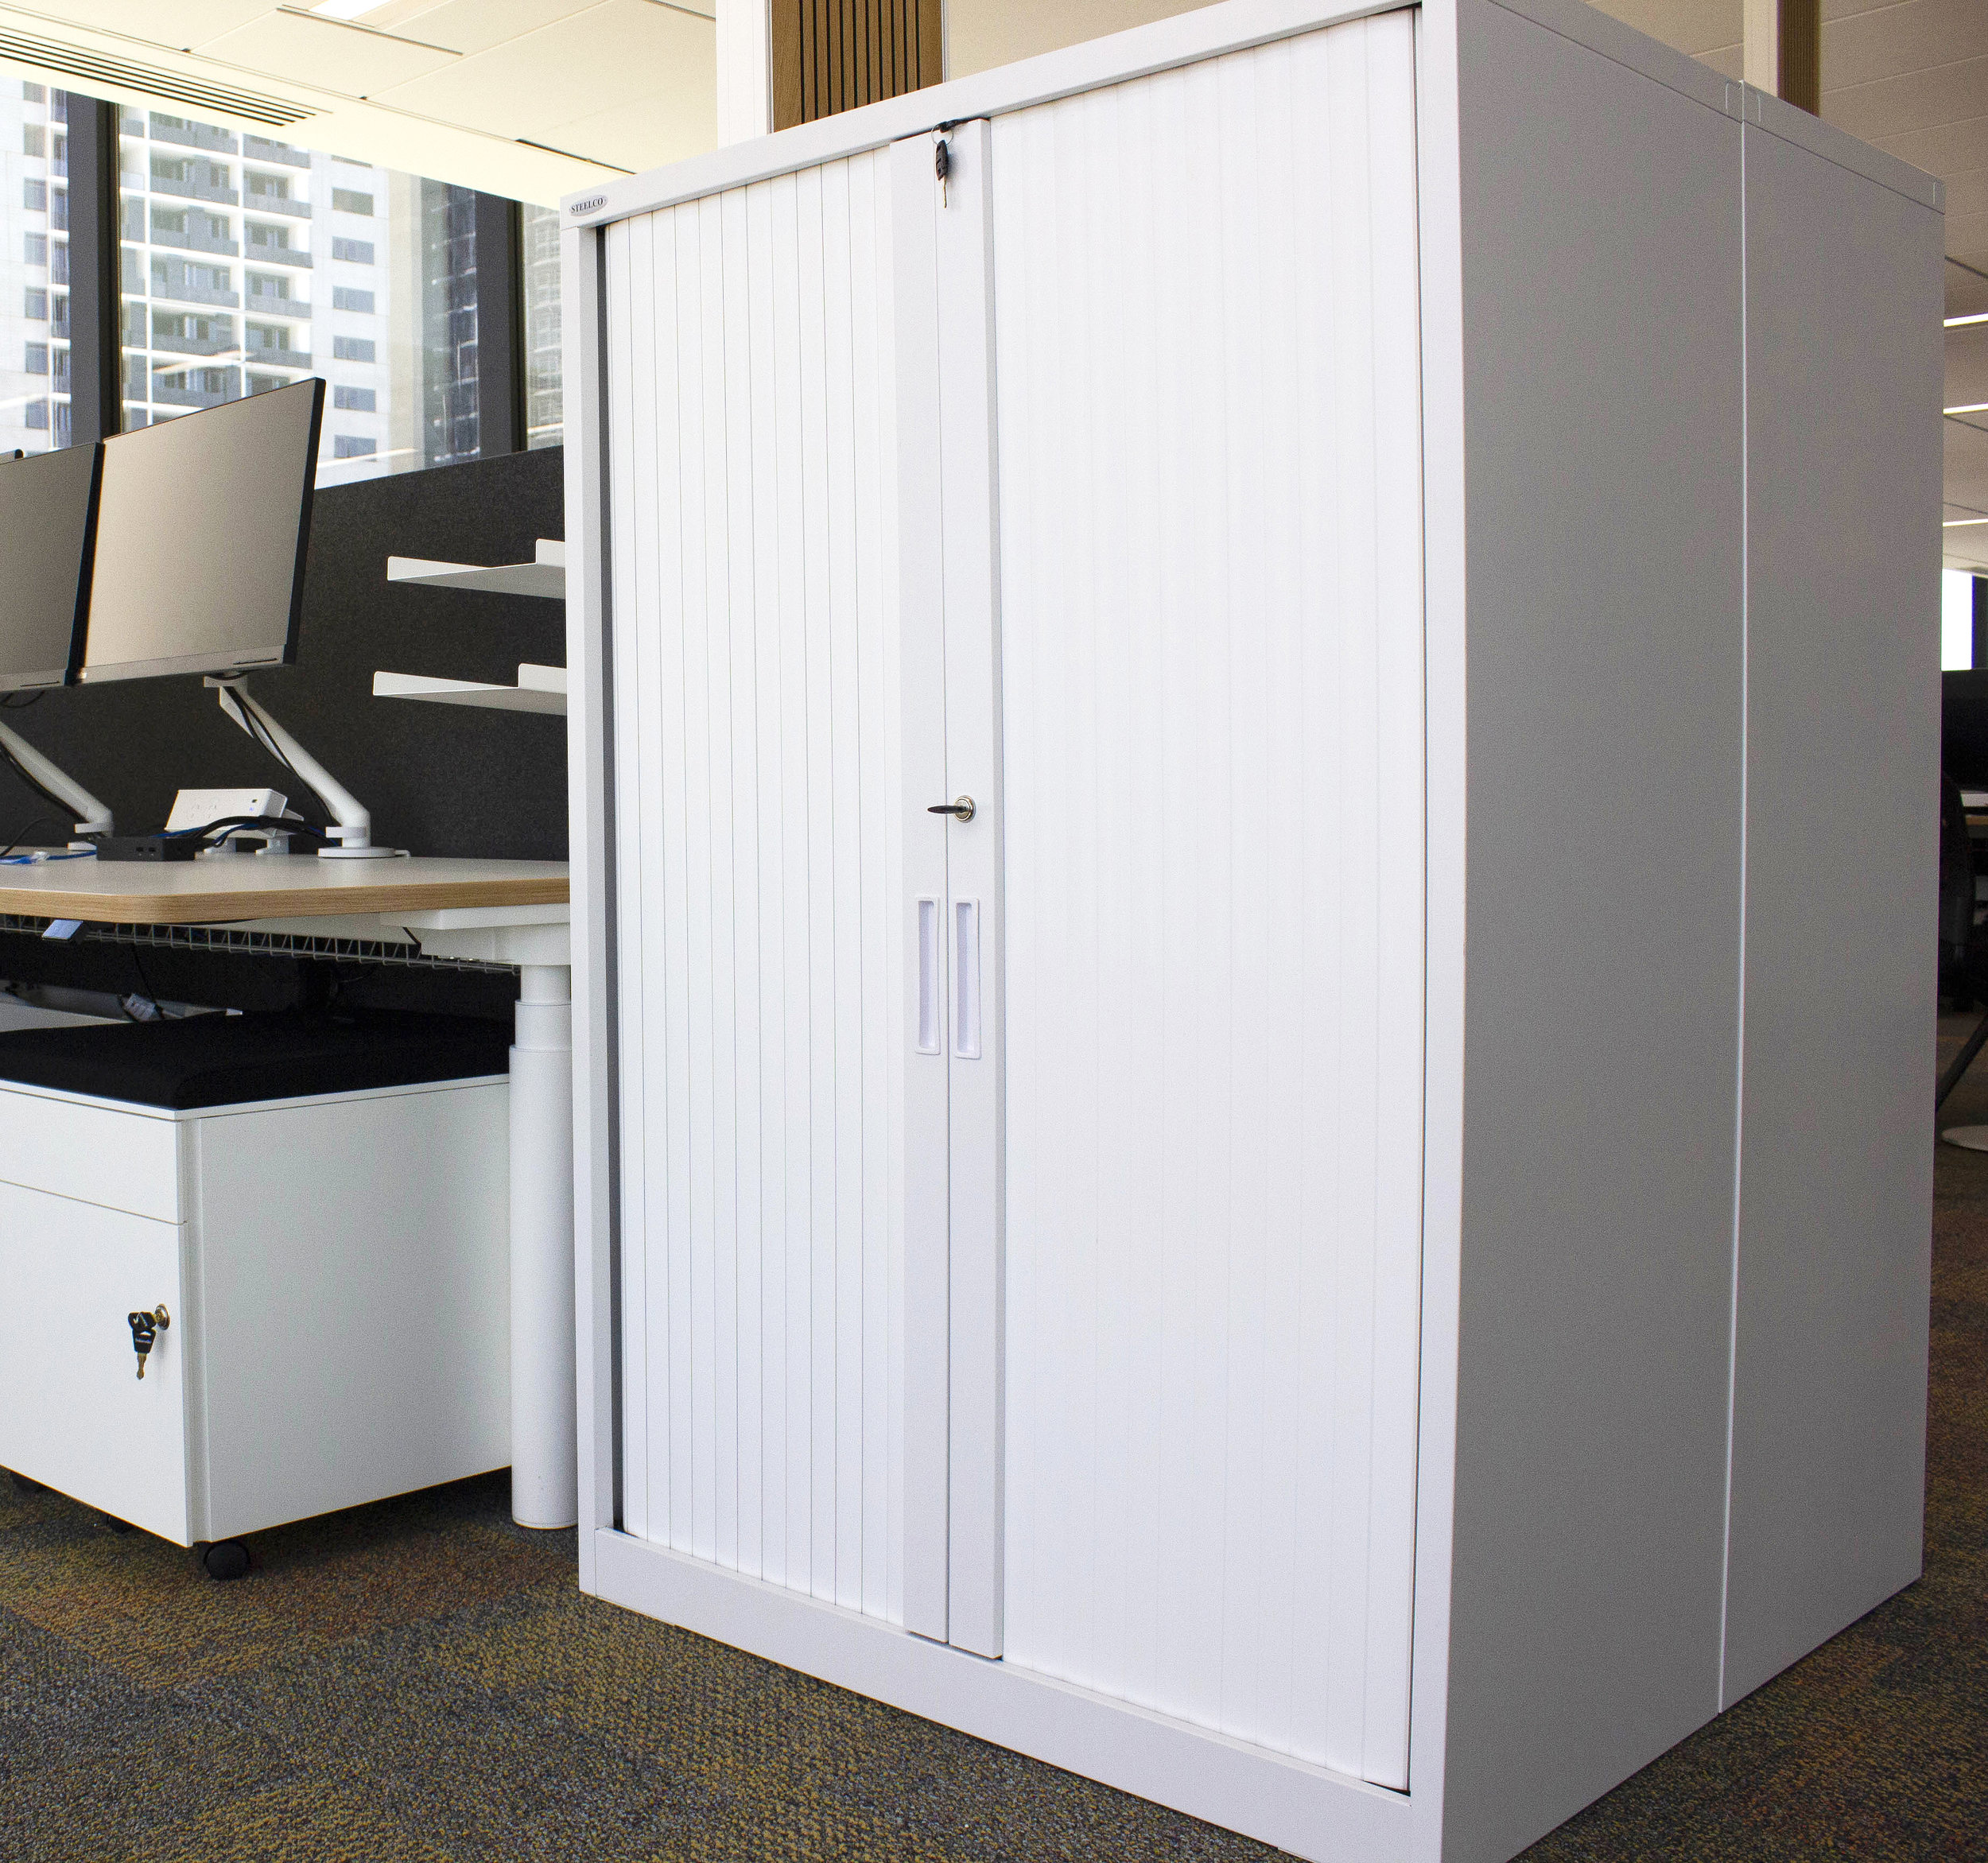 Tambour_Cabinetcroppped.jpg